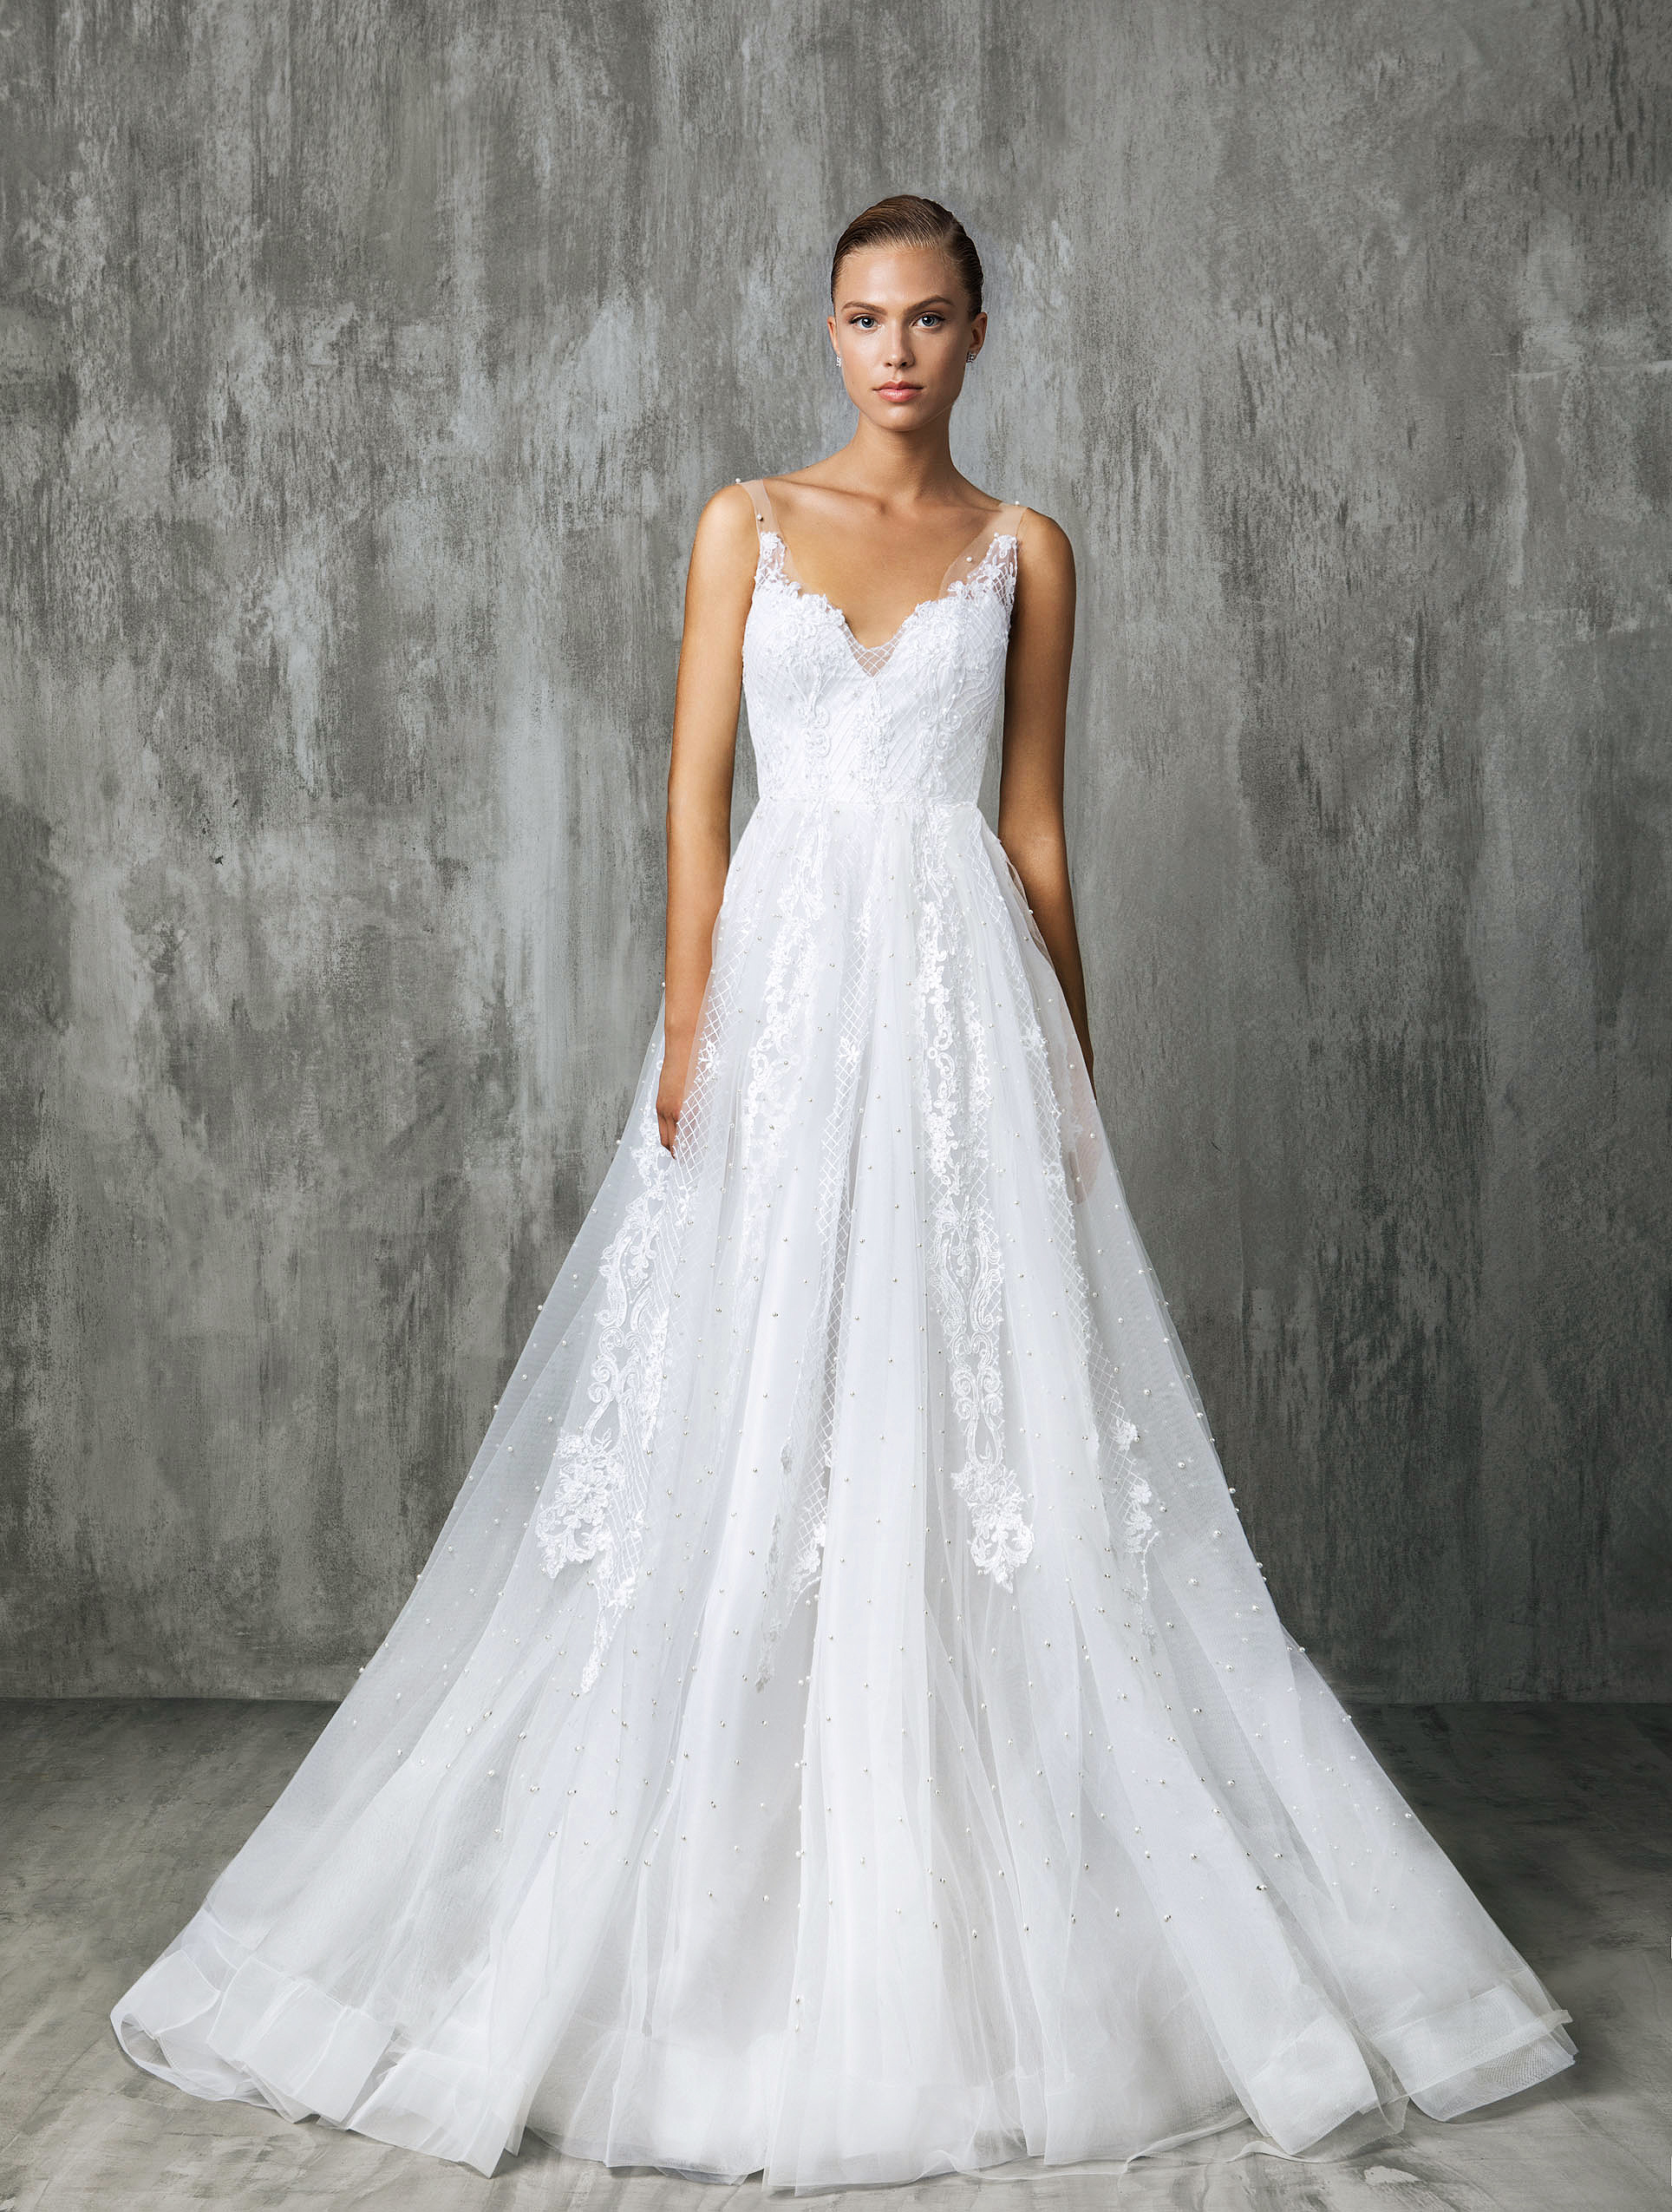 Victoria Kyriakides Sweetheart Wedding Dress Fall 2018